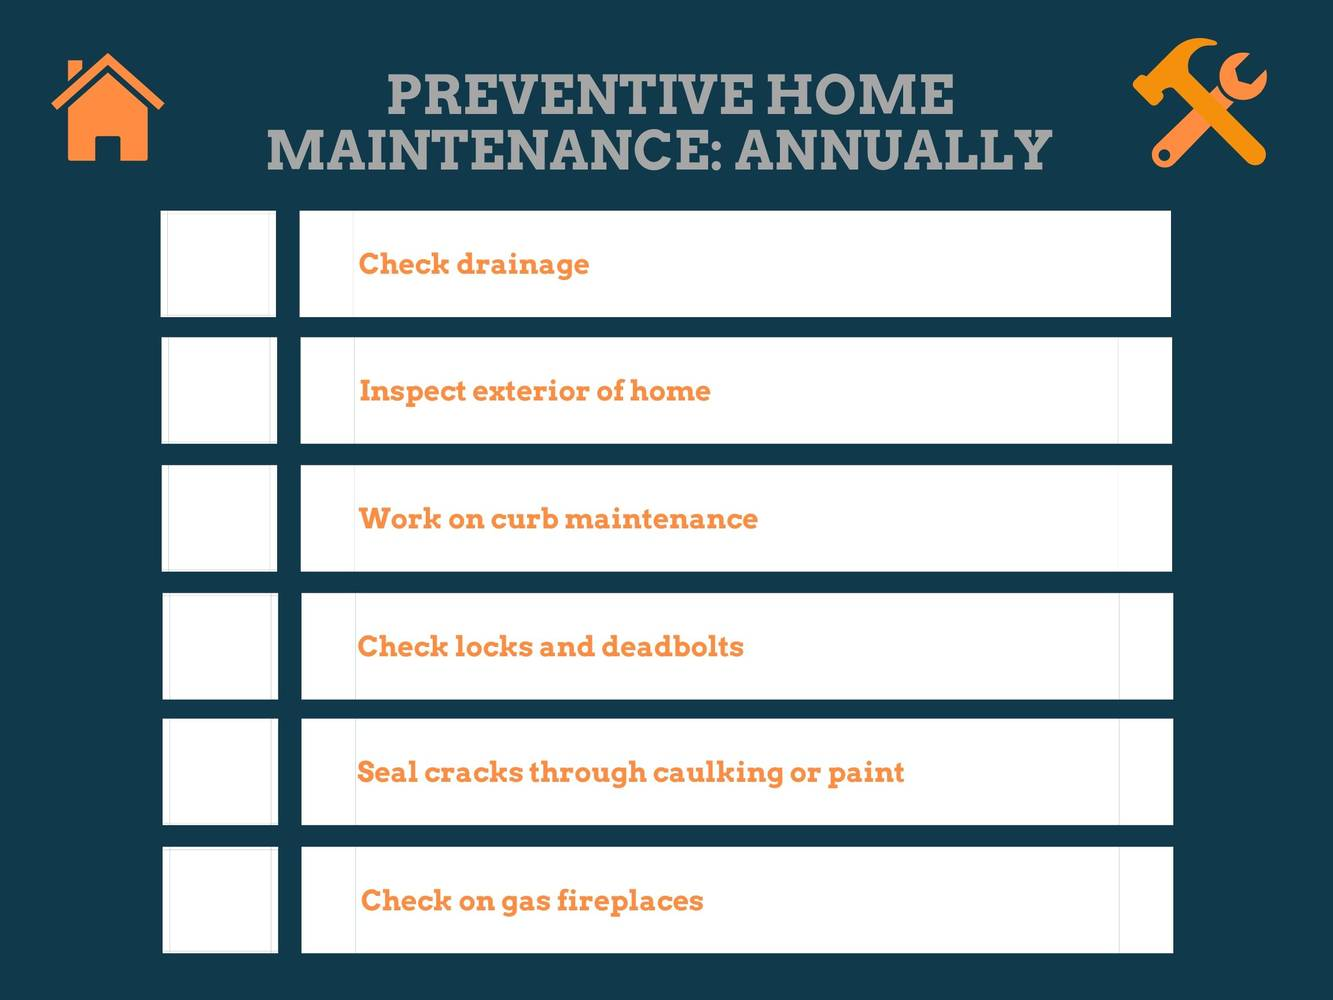 Annual Preventive Home Maintenance: How To Sell Your Home For The Most Money